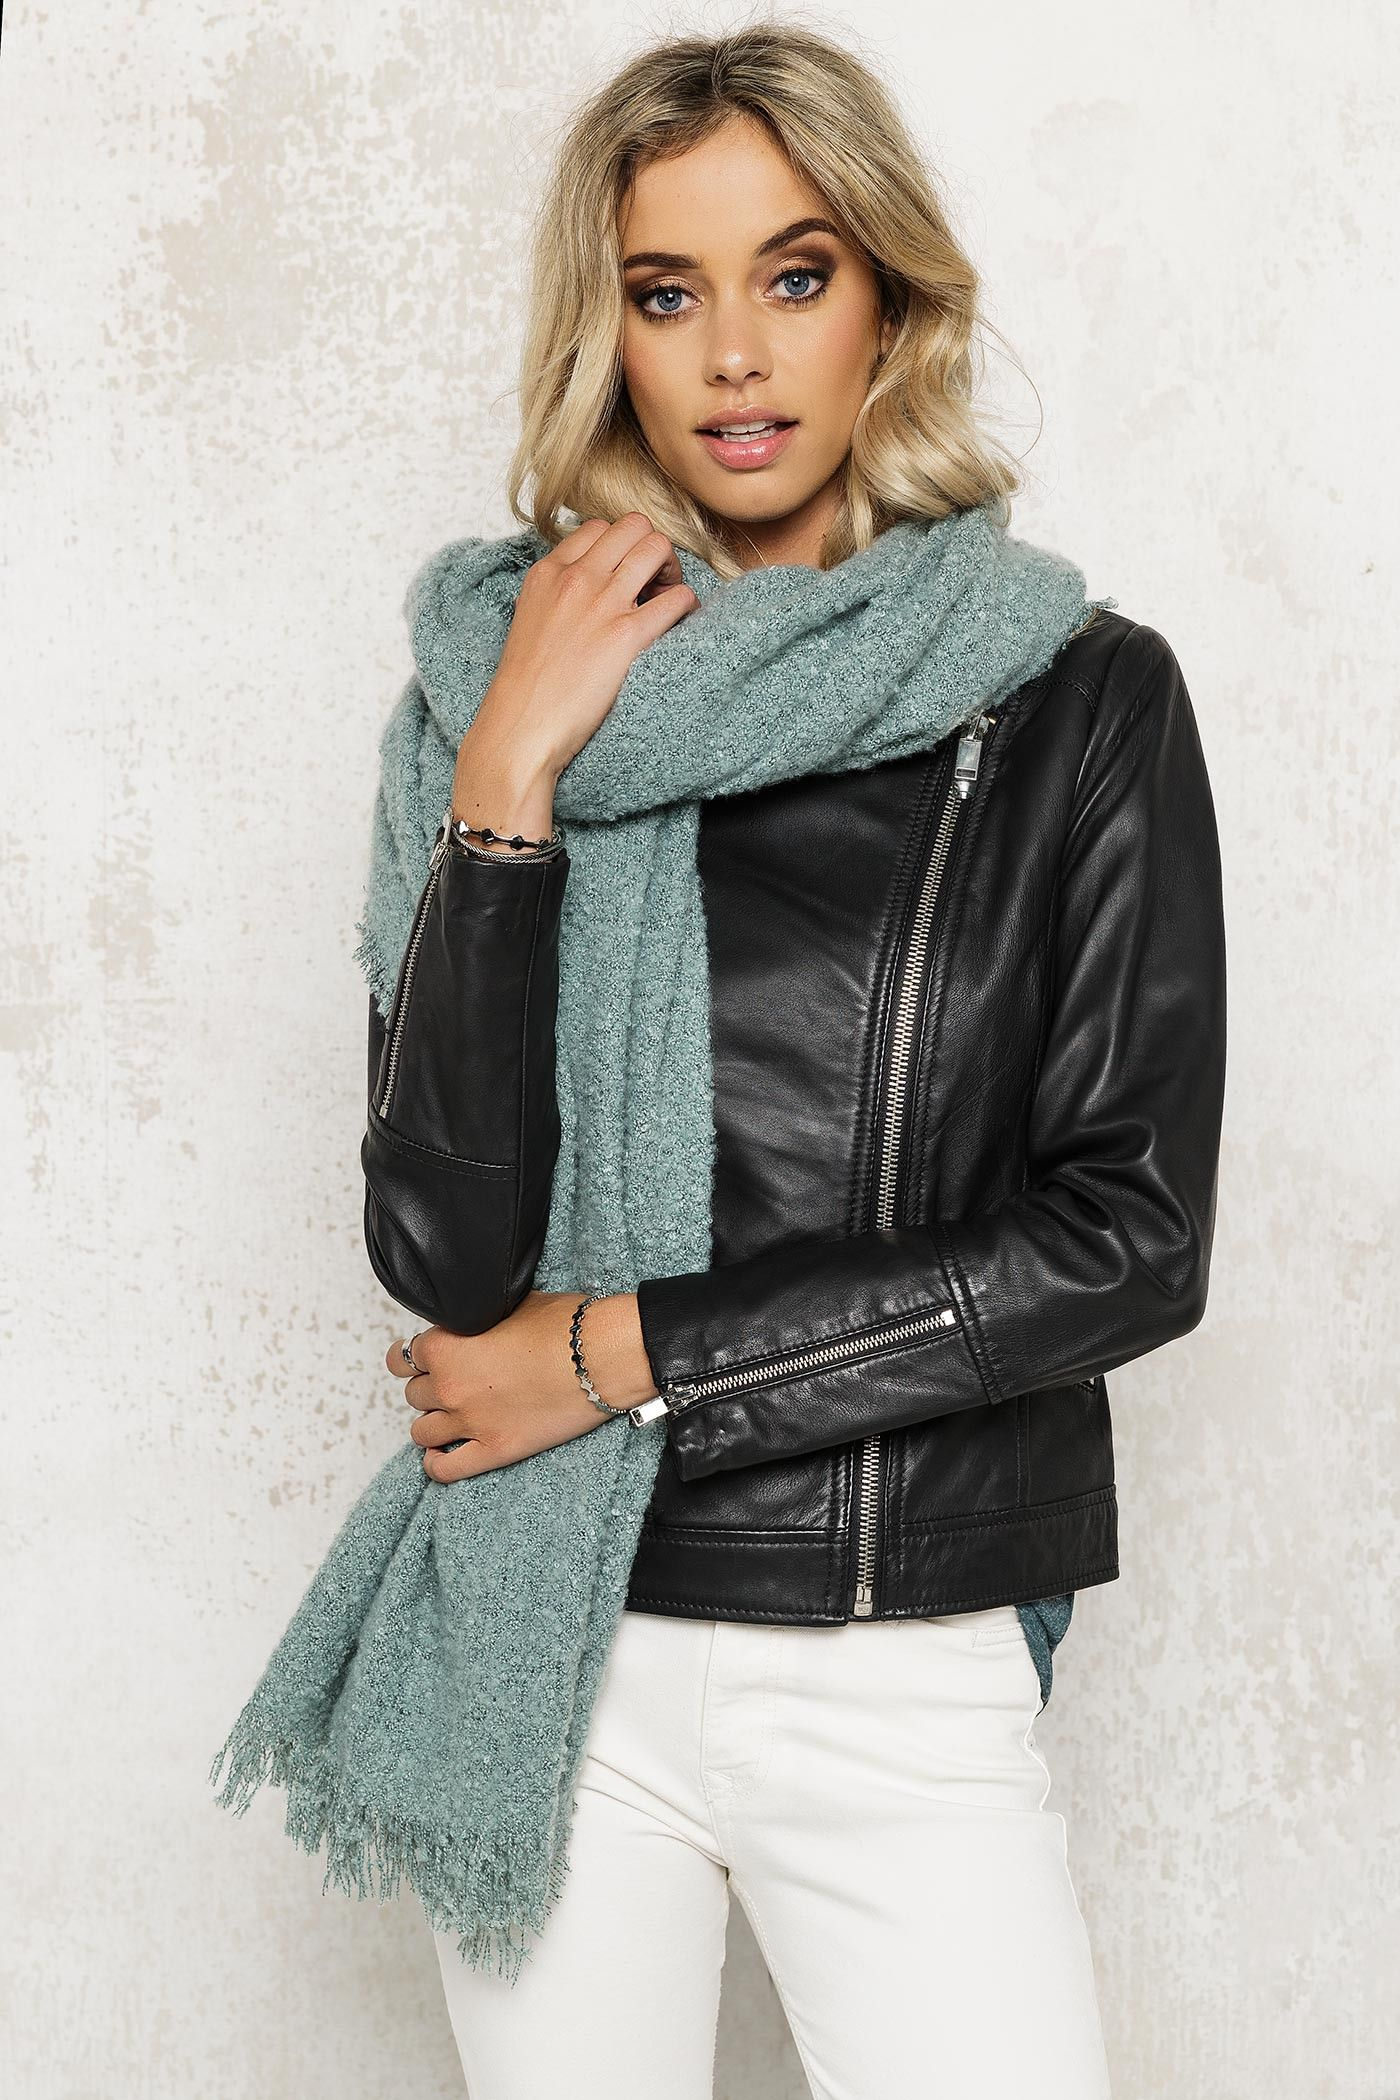 Turquoise scarf by ICHI